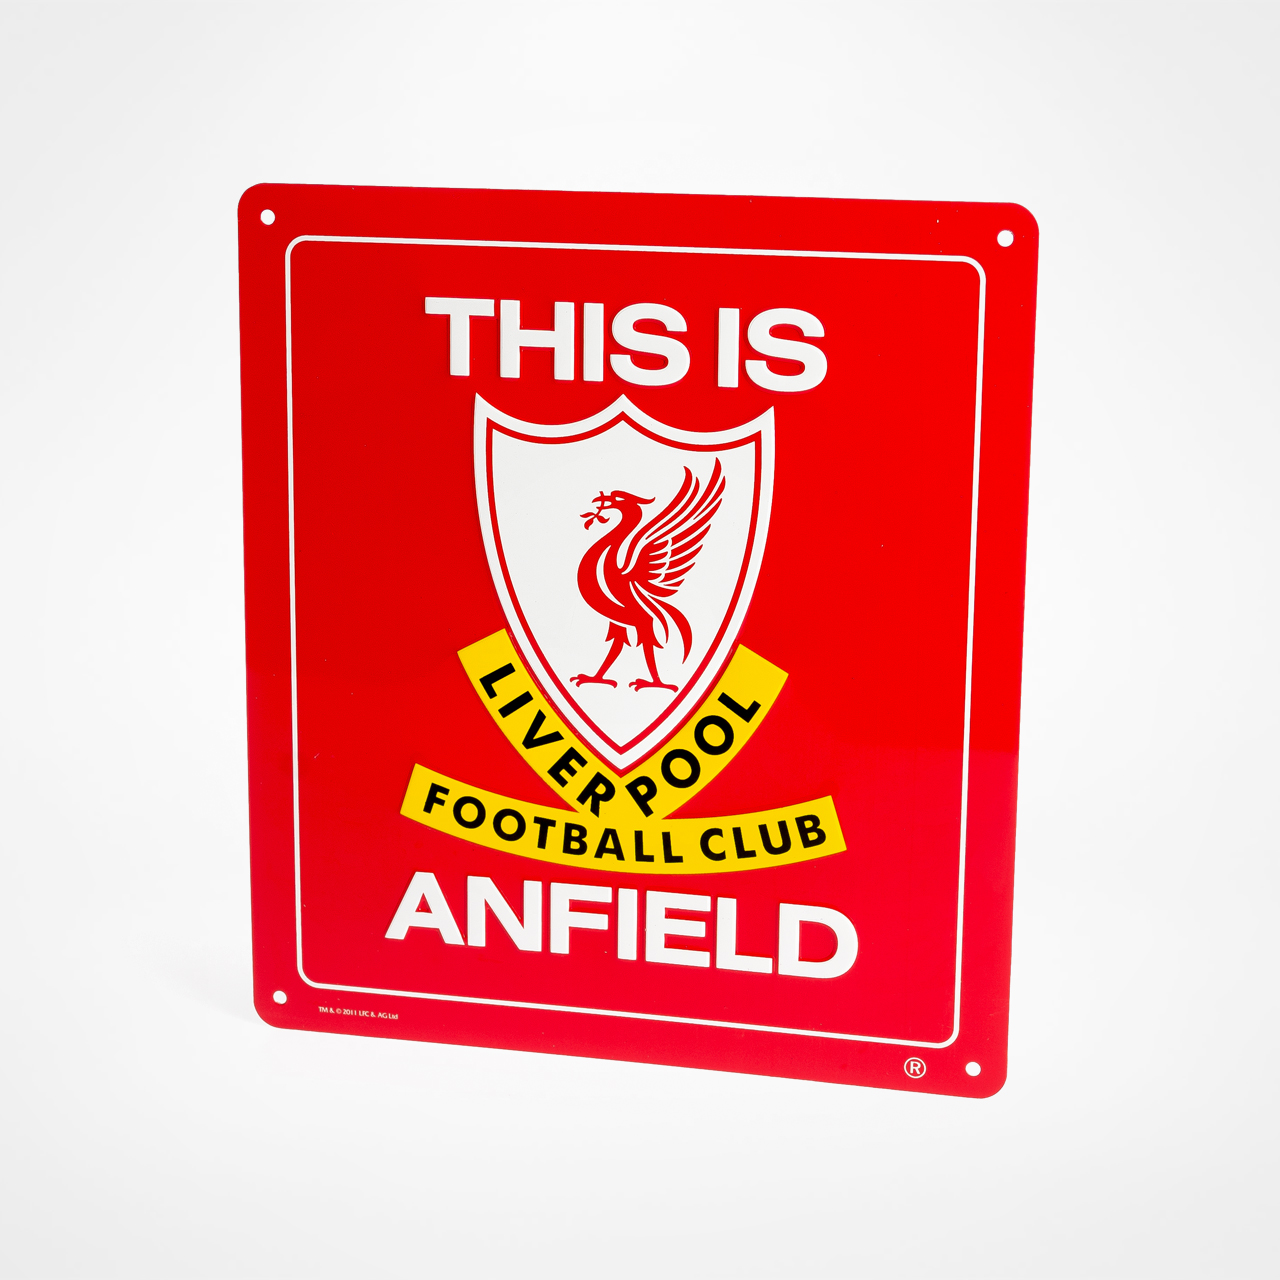 Liverpool Fc Beaten 3 0 By Real Madrid At Anfield: Liverpool Skylt This Is Anfield Hos Supporterprylar.se